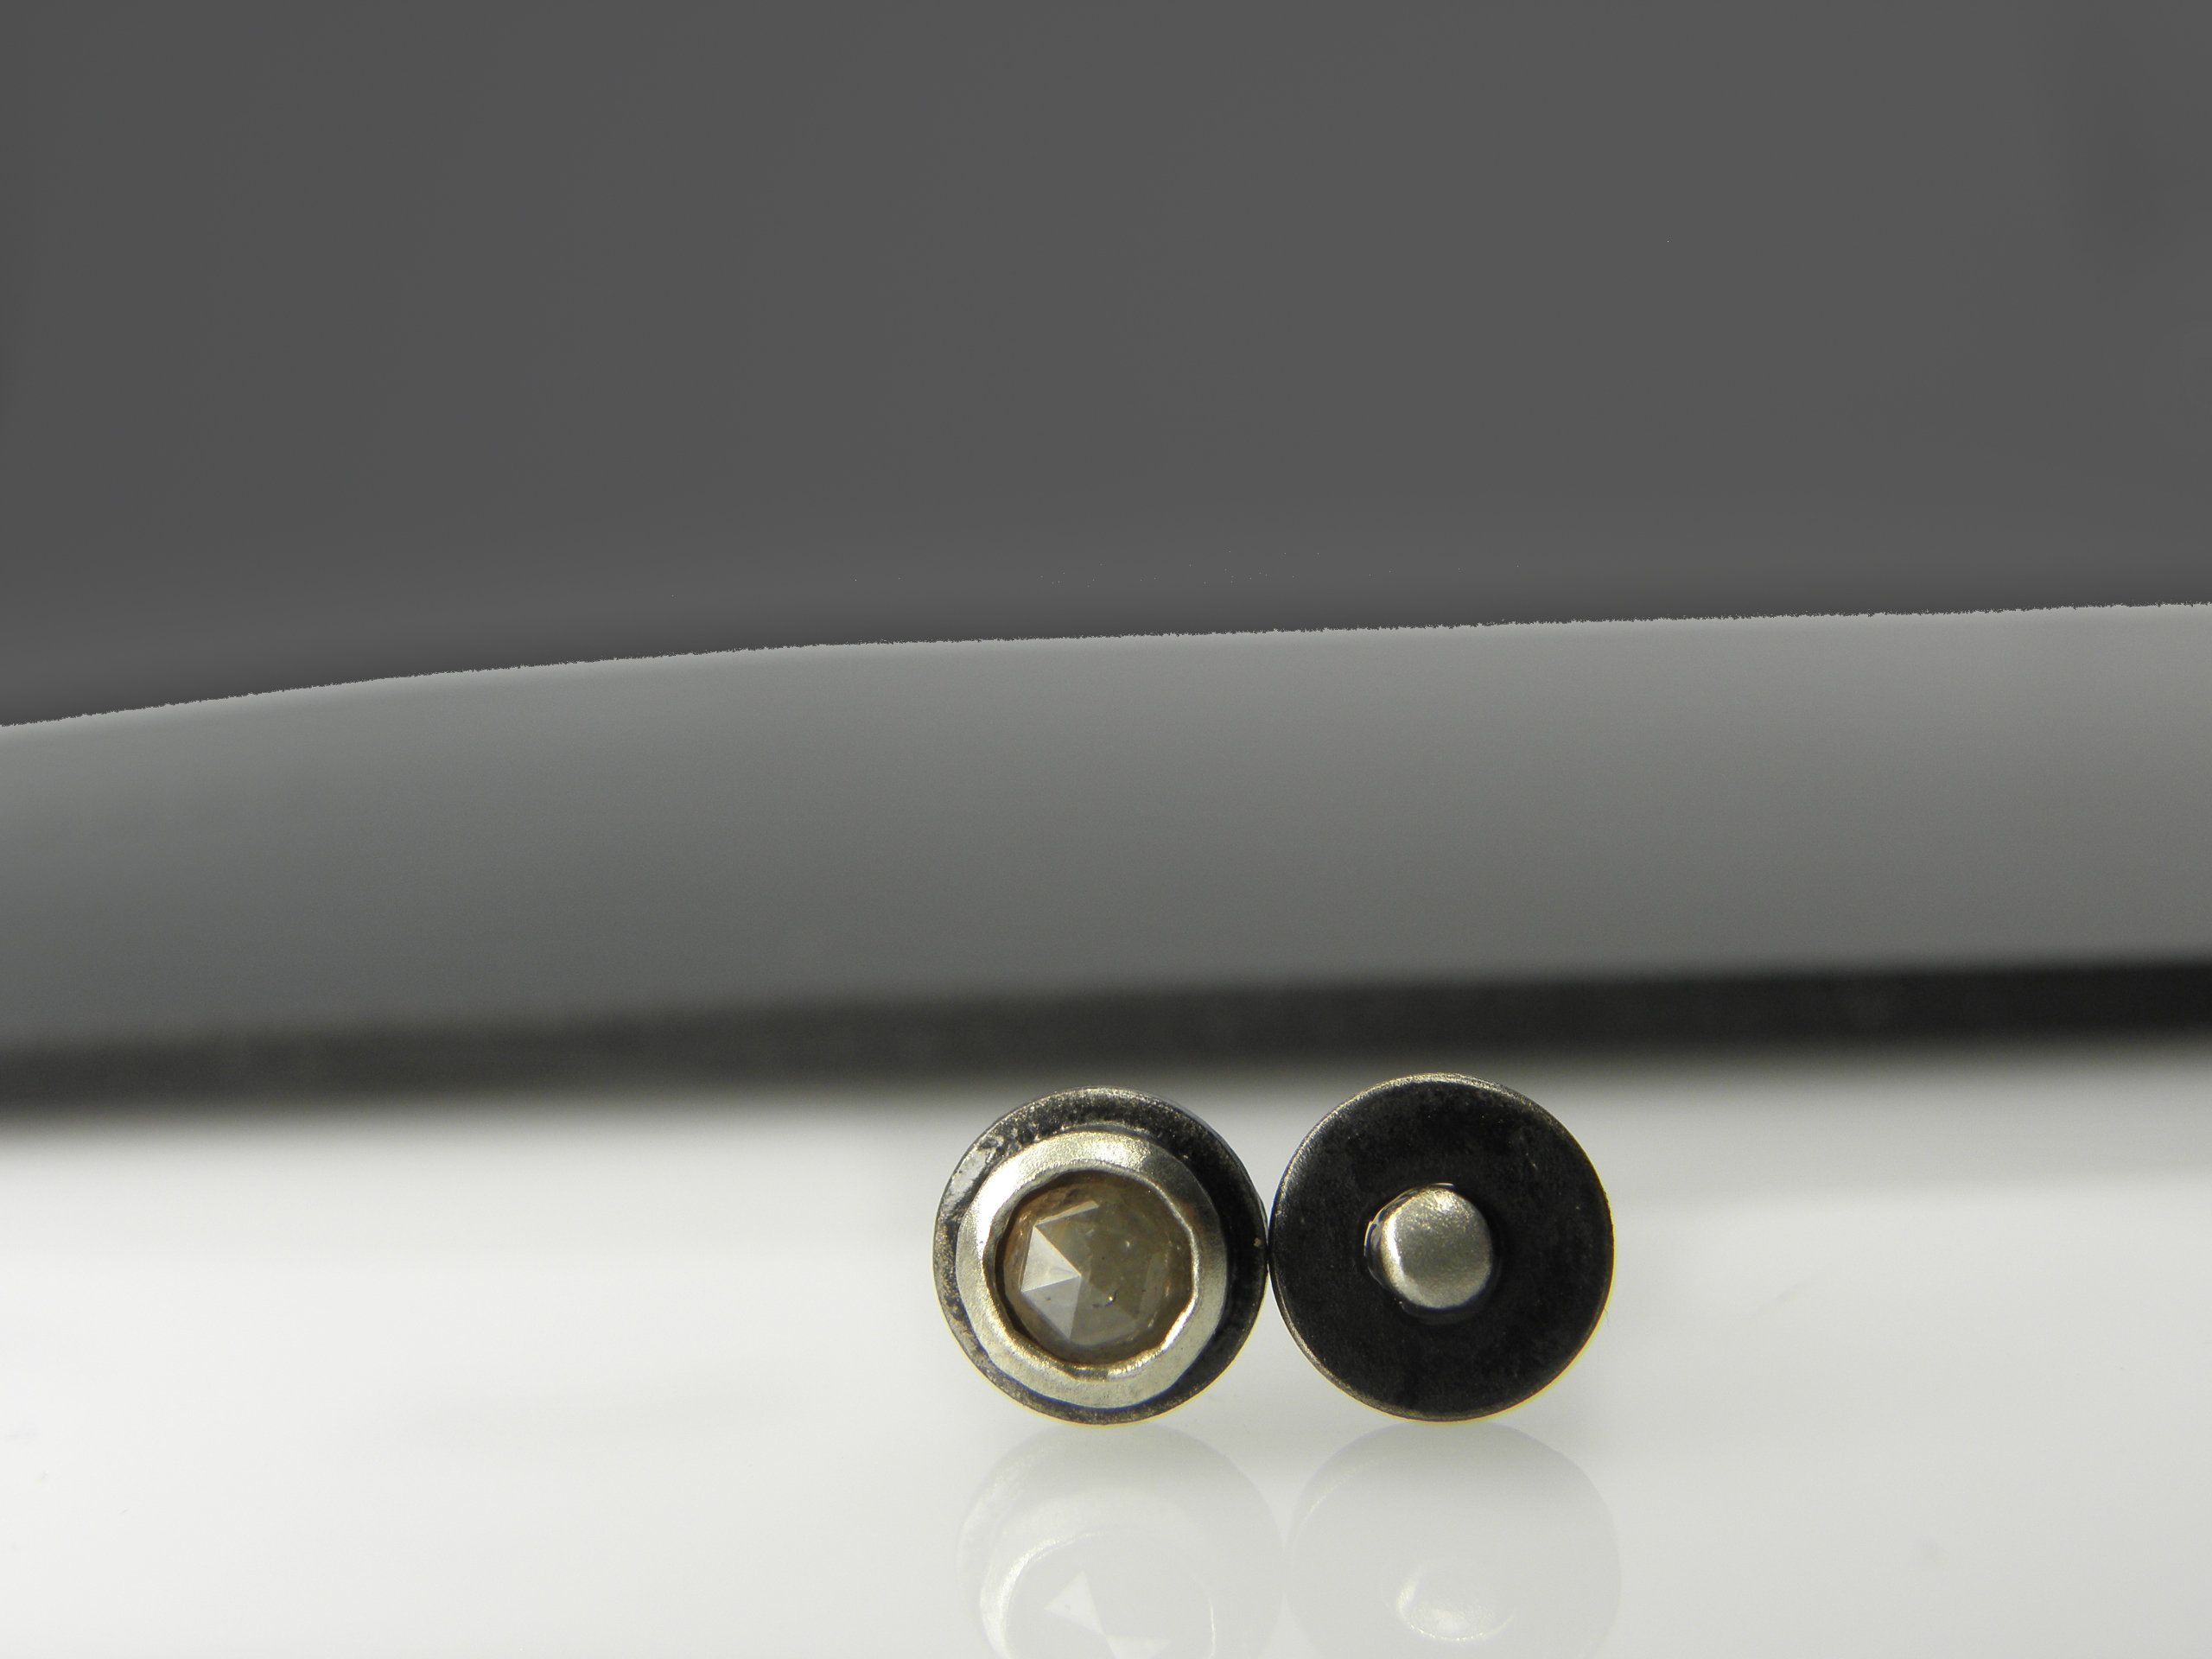 616d4d92c Vesna Kolobaric by VESNAmanJEWELRY - 6 mm UNIQUE mismatched  #diamondearrings , raw faceted light #